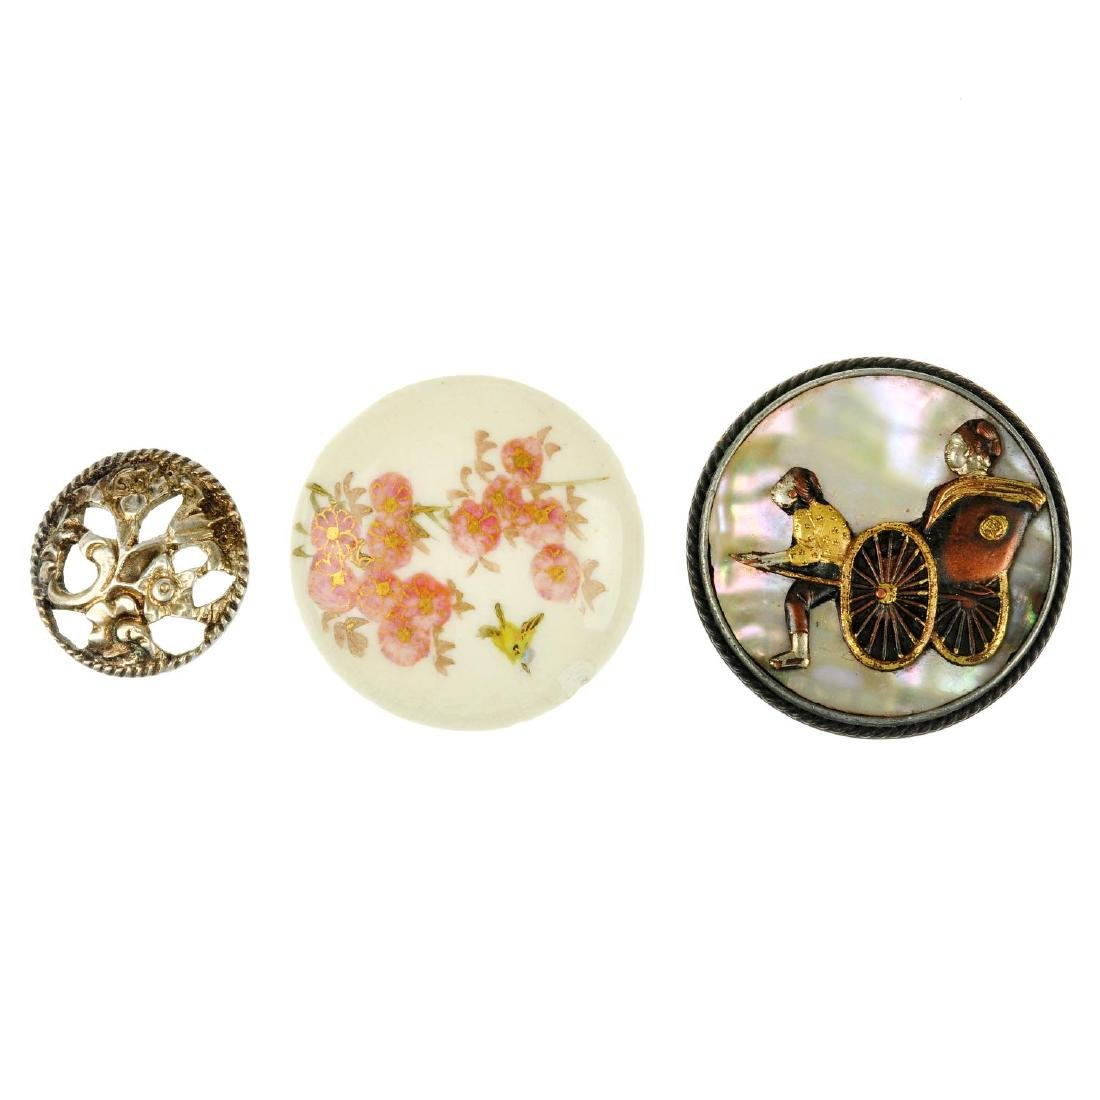 A selection of mainly early 20th century buttons. To